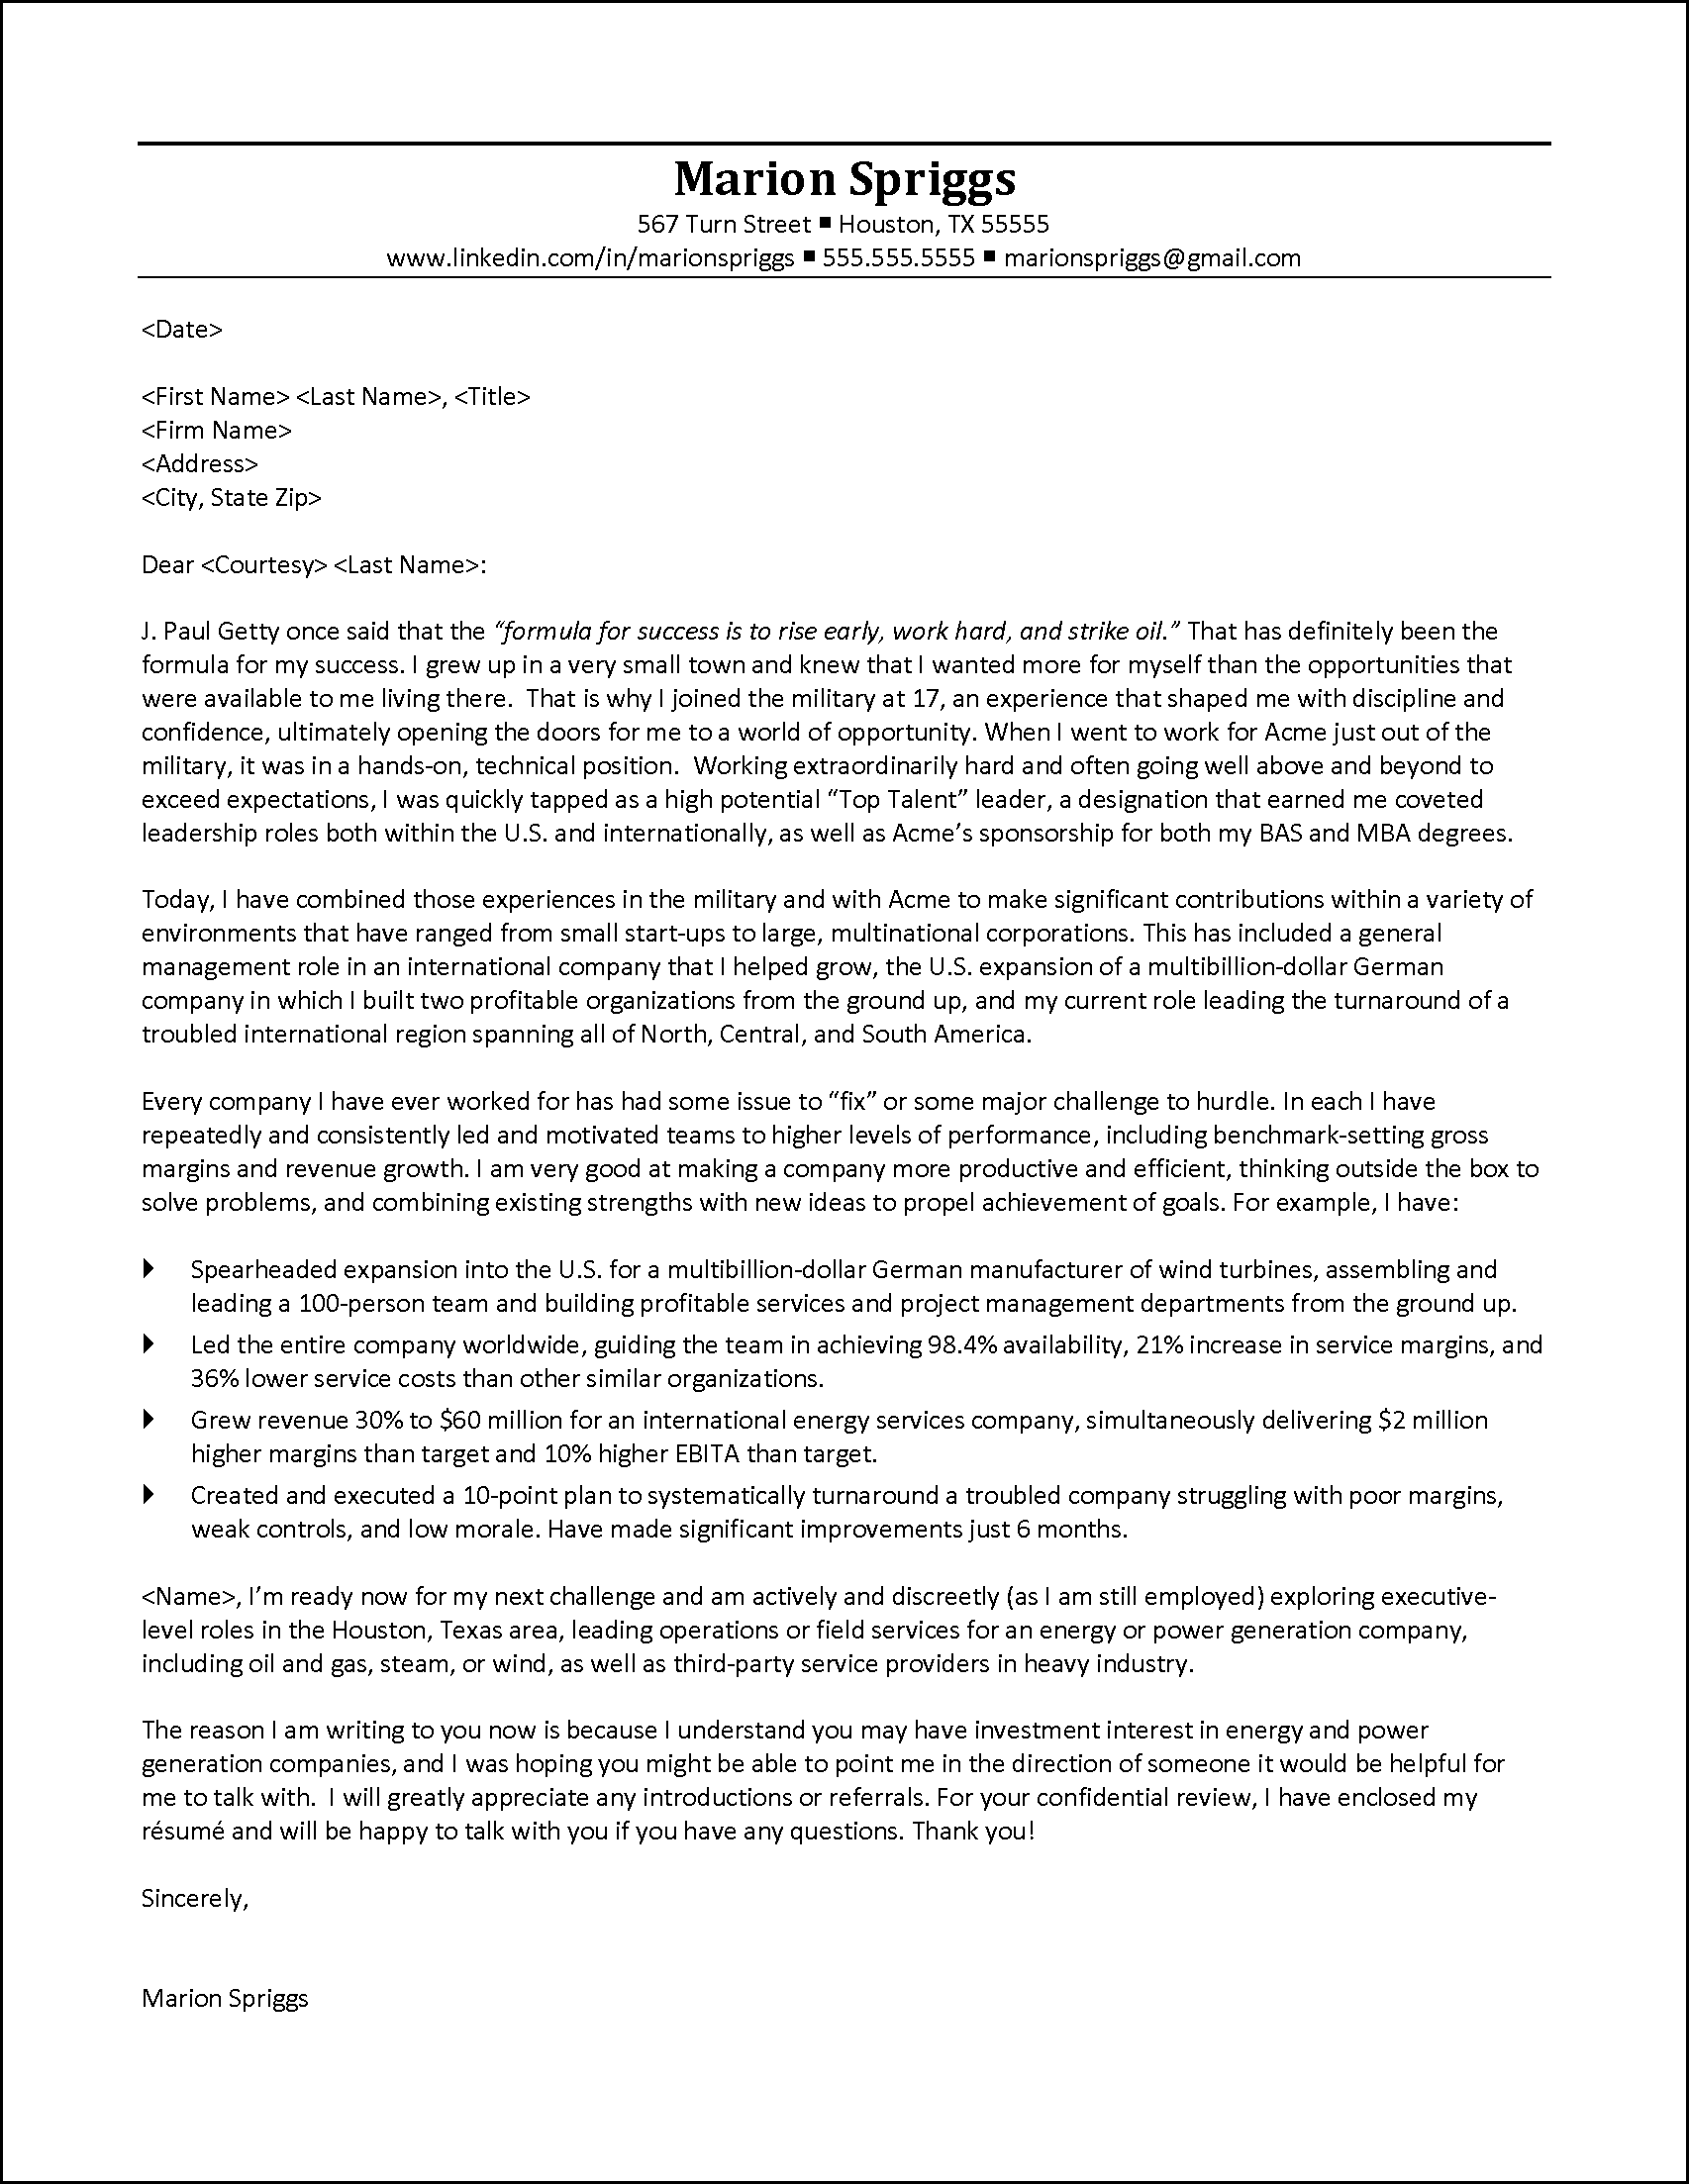 Executive Cover Letter Example to Venture Capital Firms